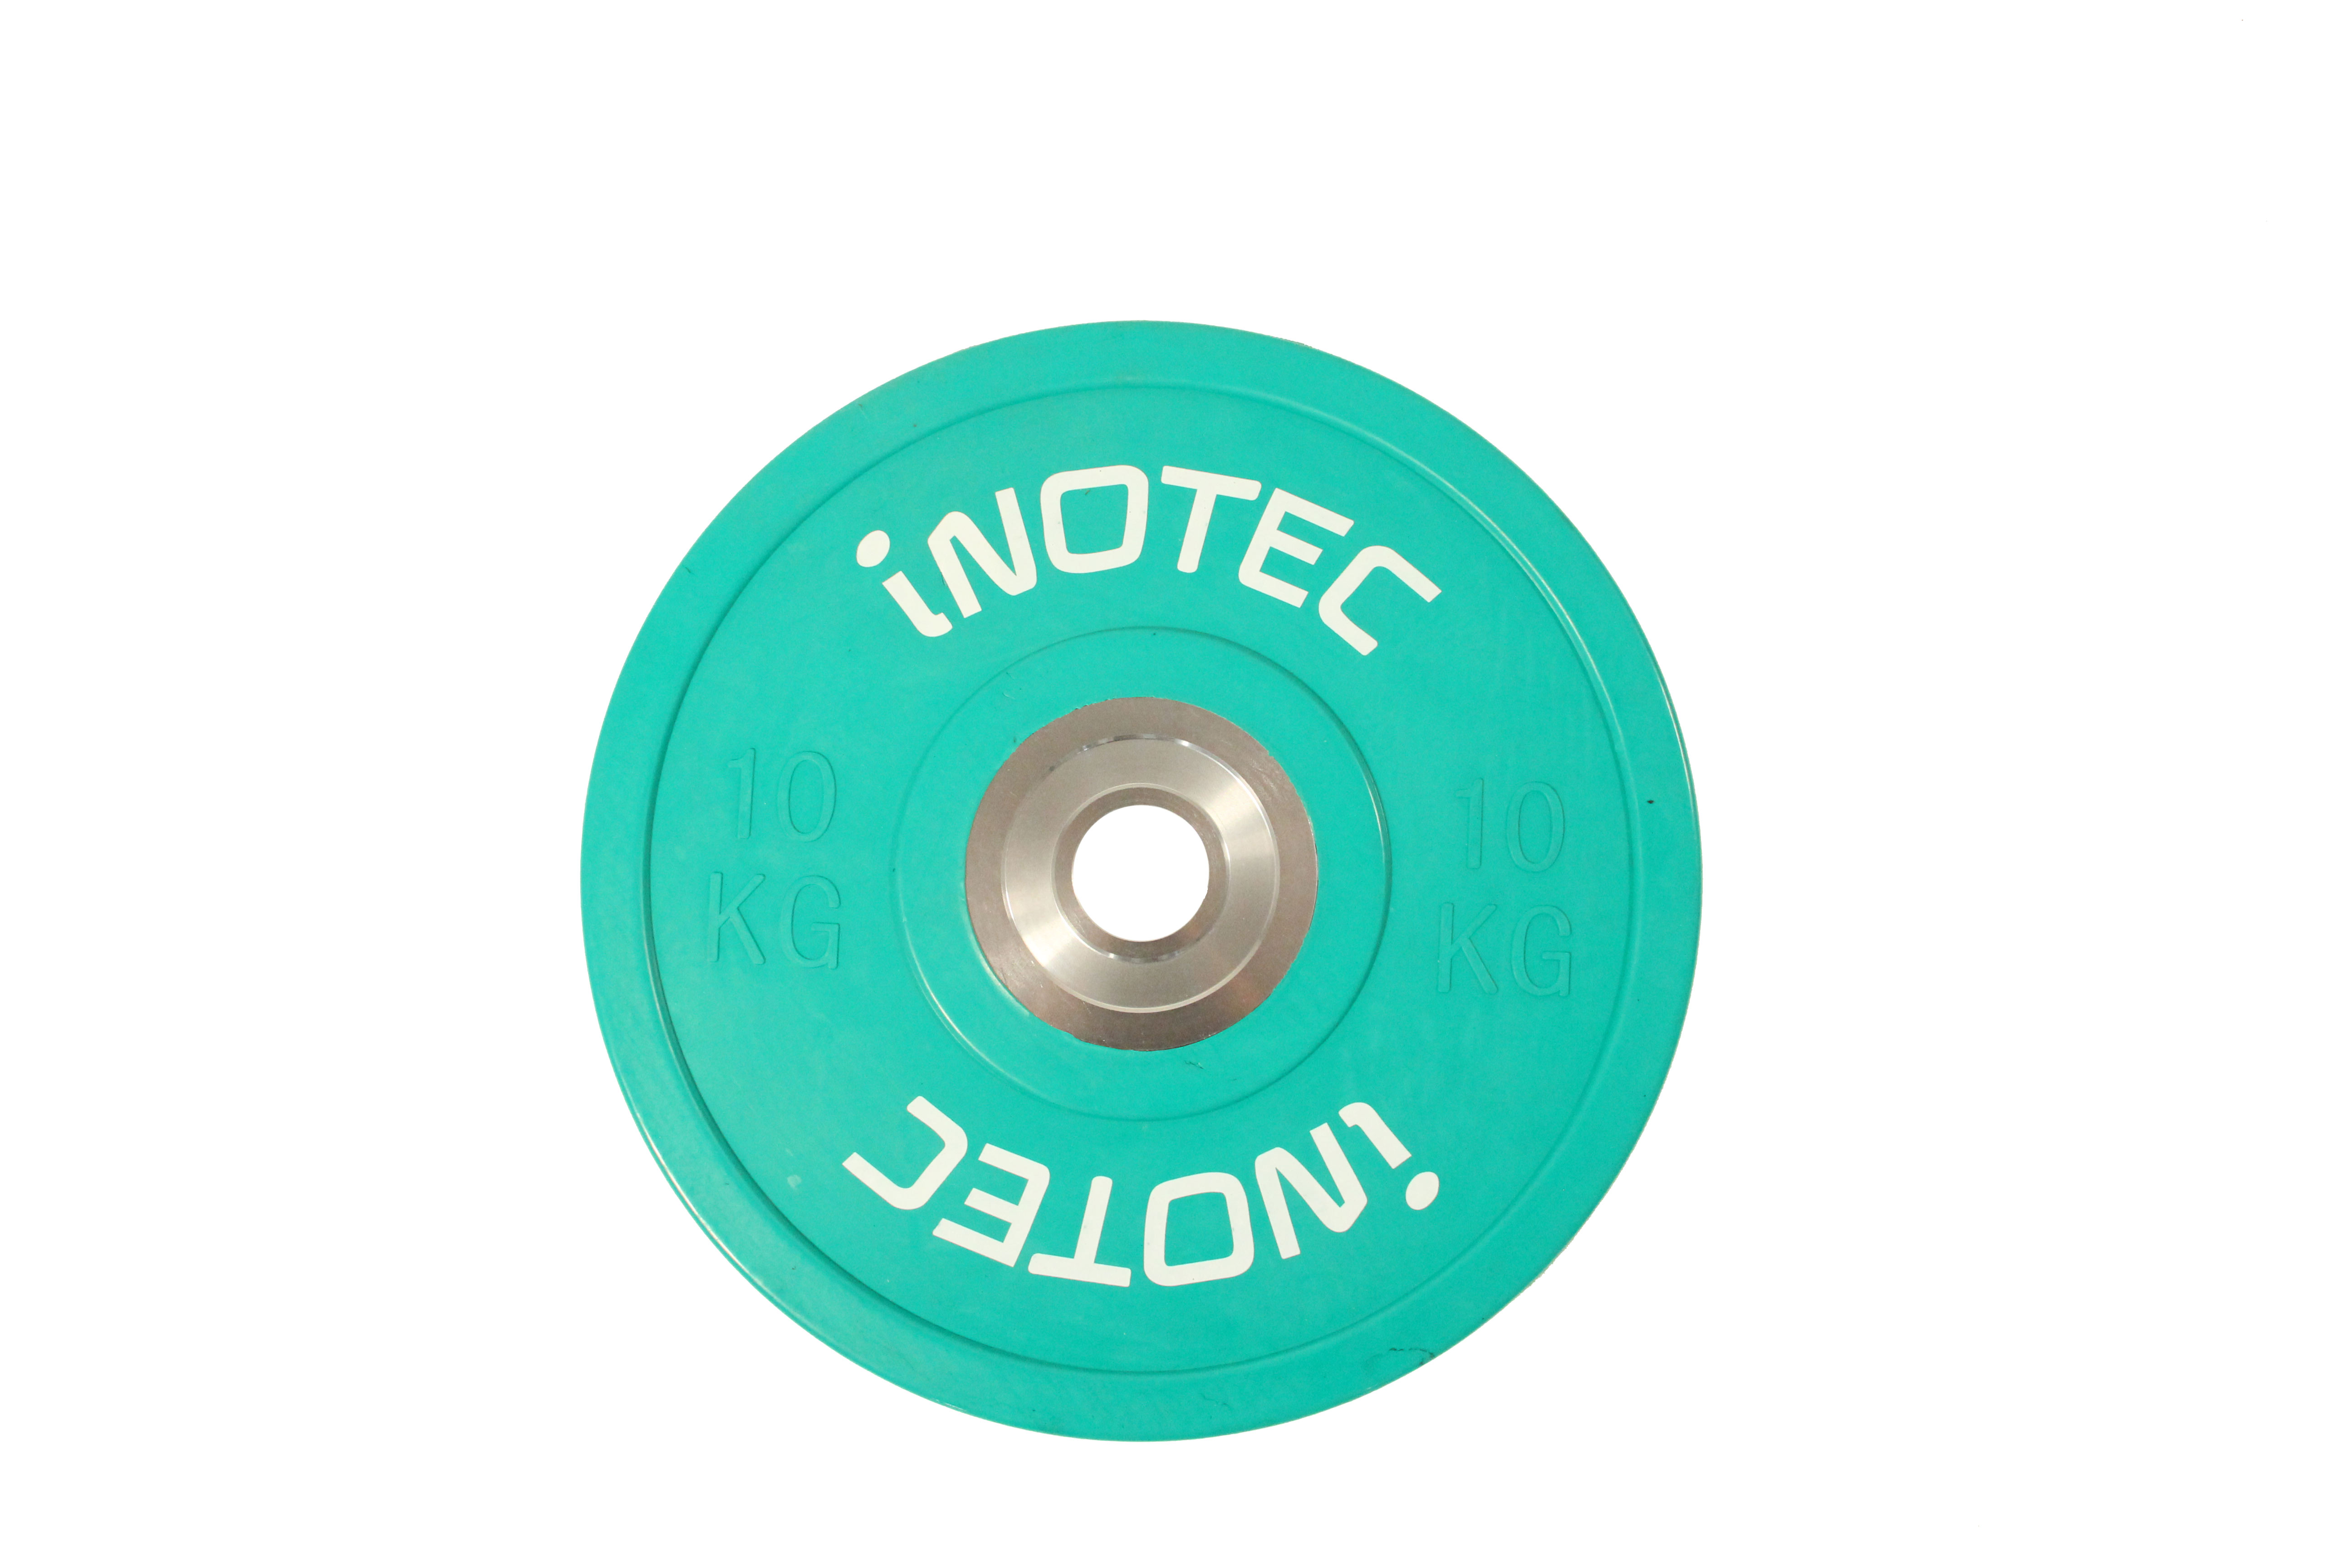 Inotec Competition Bumper Plates 10 kg (Stk.)